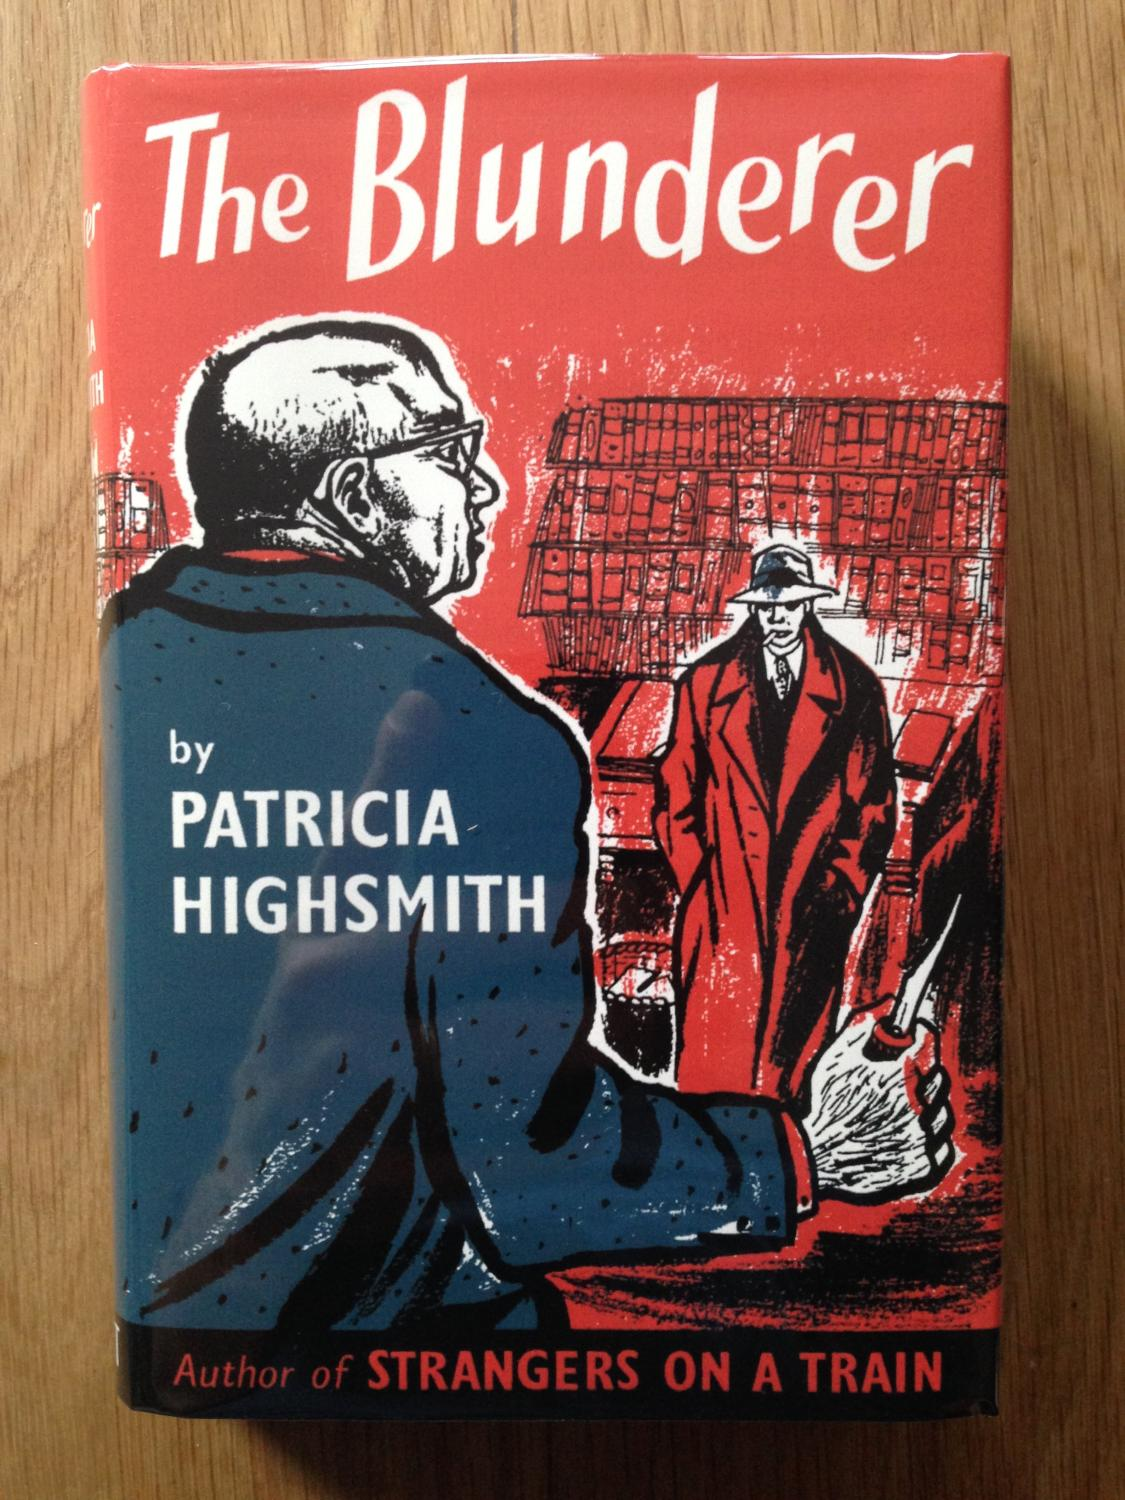 UK cover for The Blunderer.